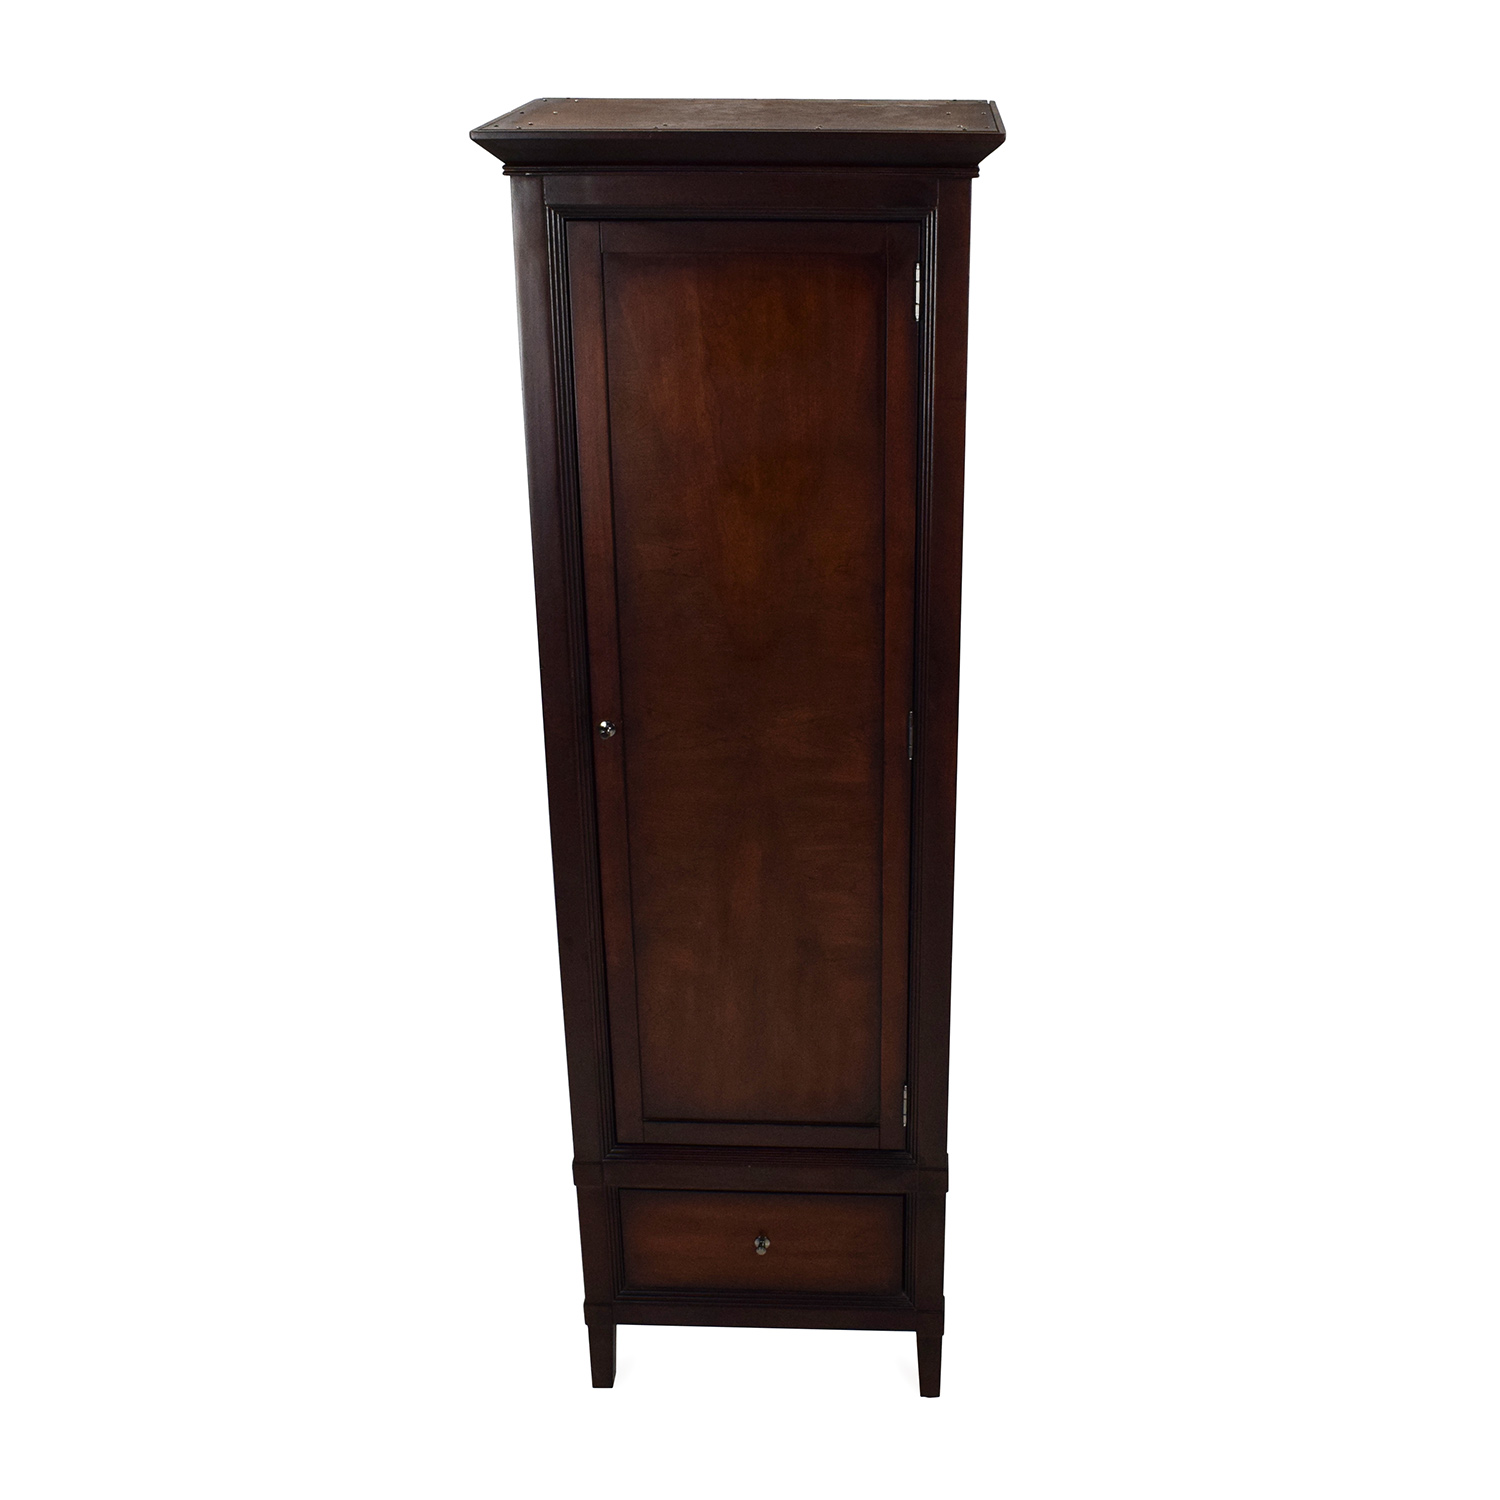 Macy's Macy's Tall Armoire price